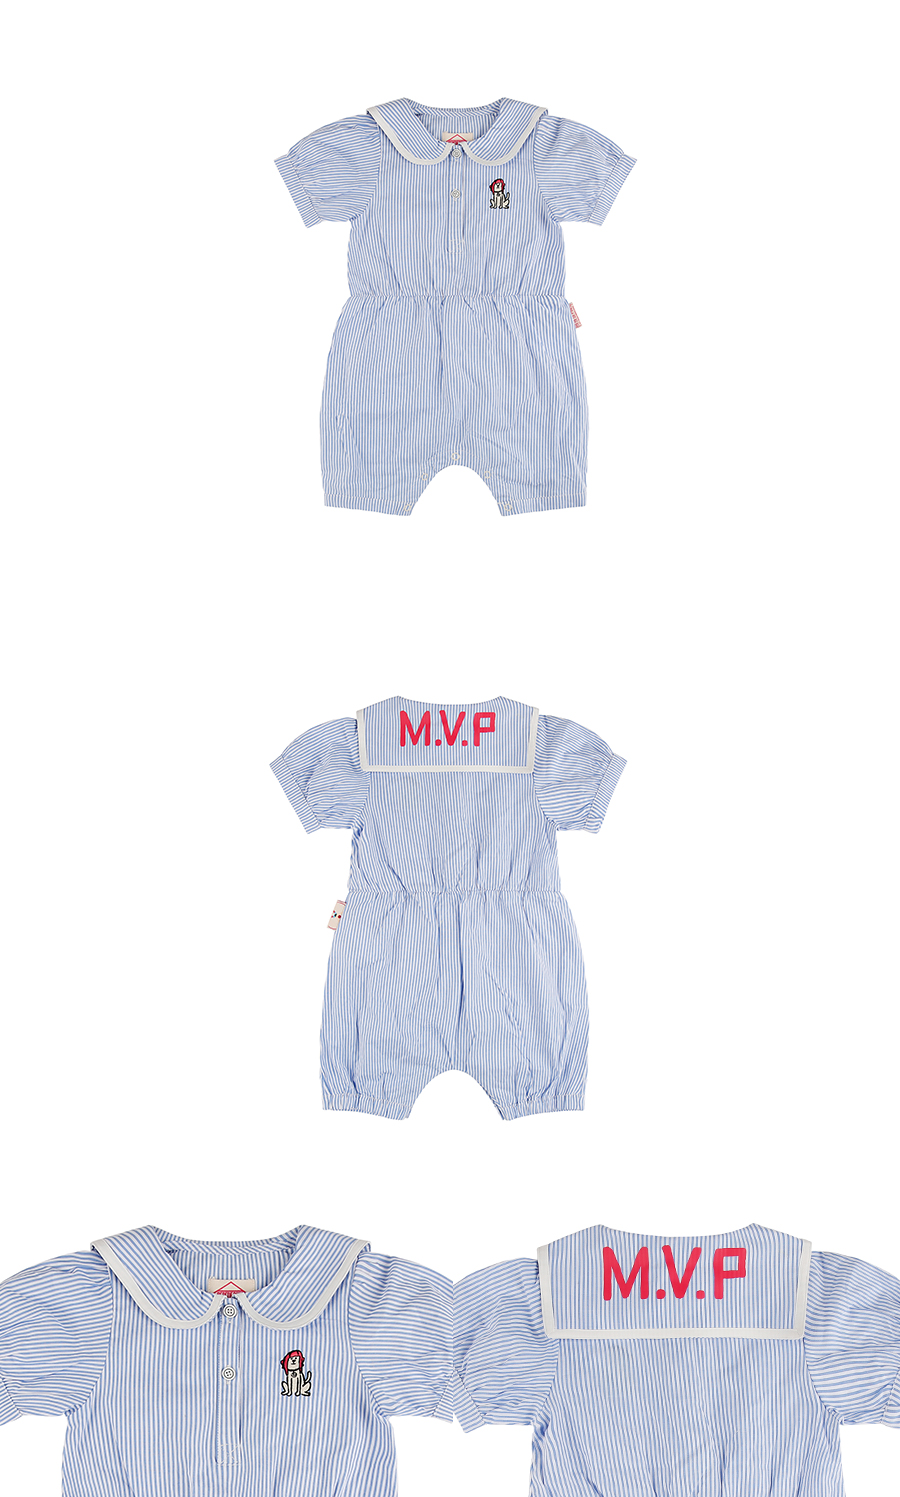 MVP sailor collar baby summer overall 상세 이미지